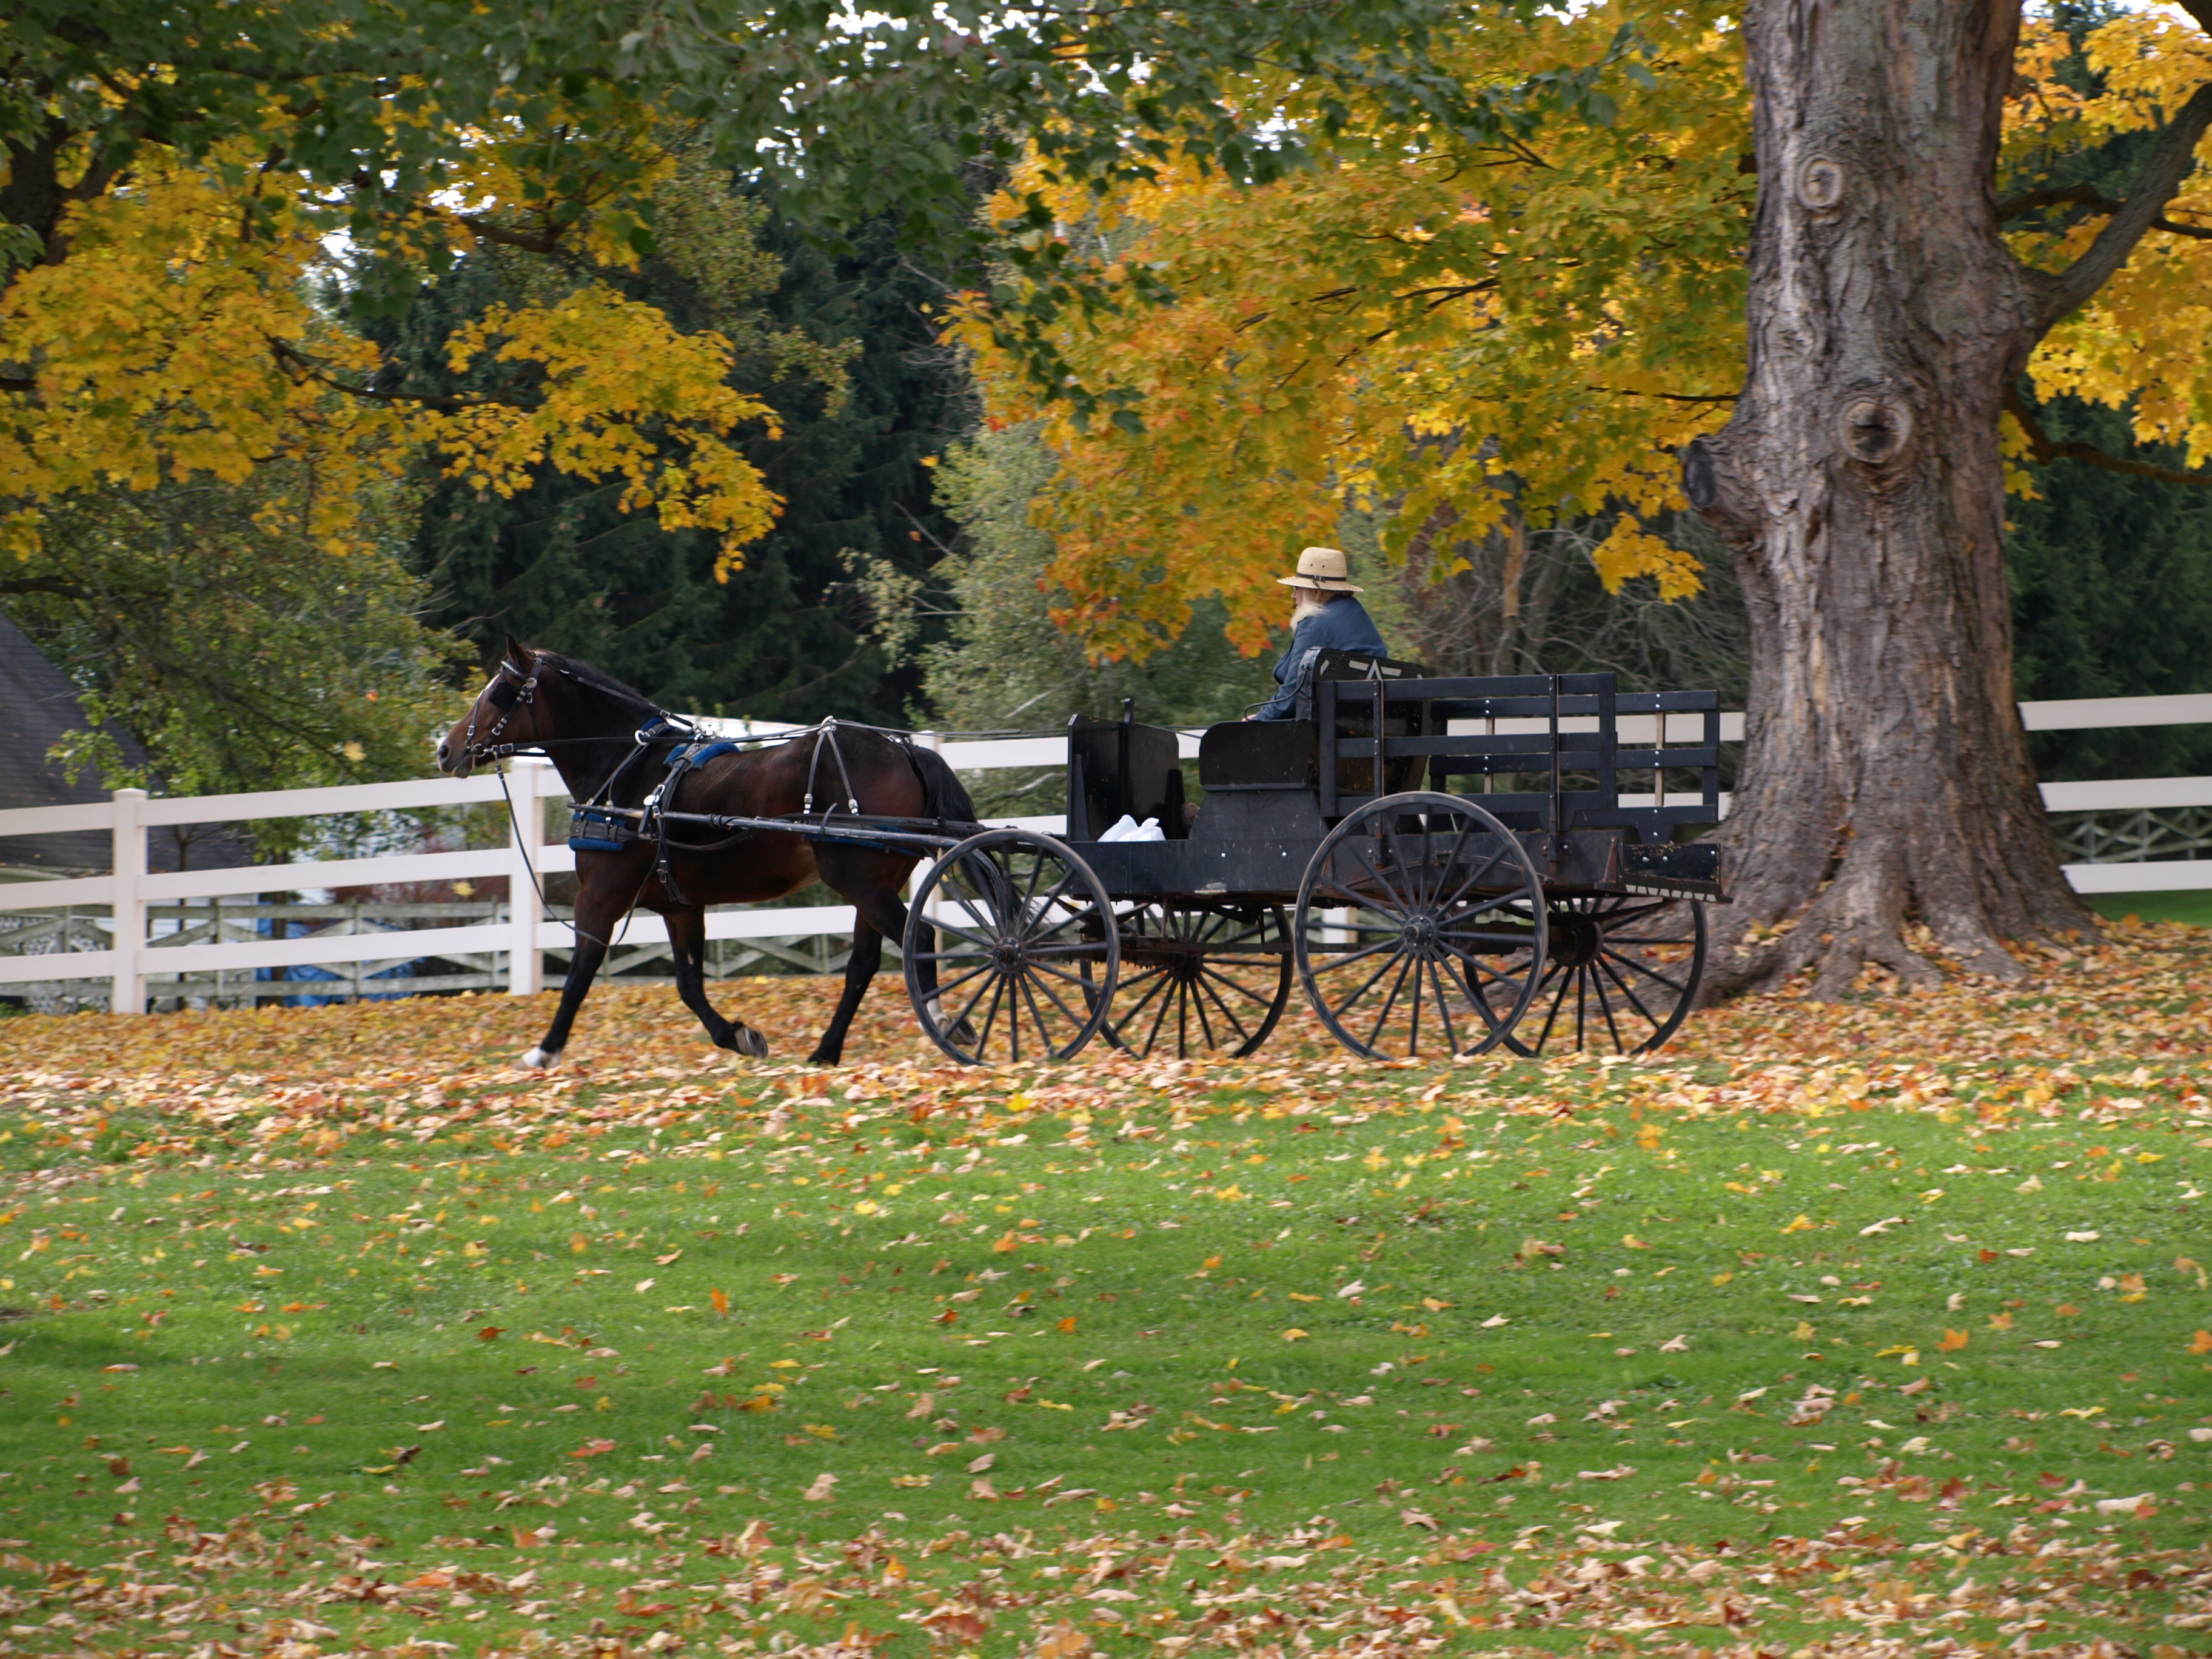 Explore Ohio's Amish Country